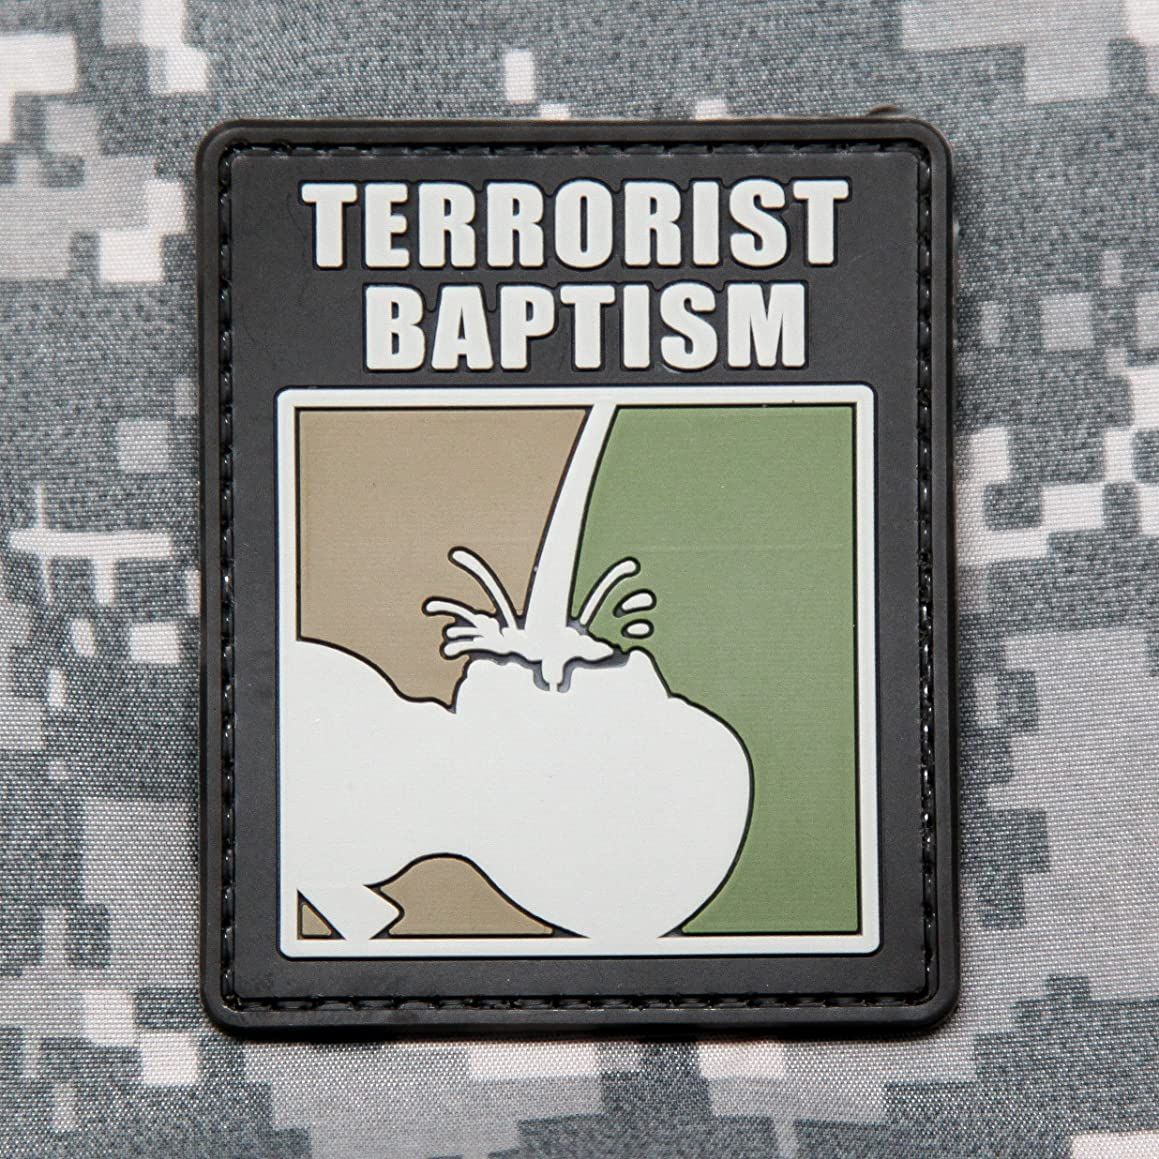 NEO Tactical Gear Terrorist Baptism - PVC Morale Patch, Hook Backed Morale Patch